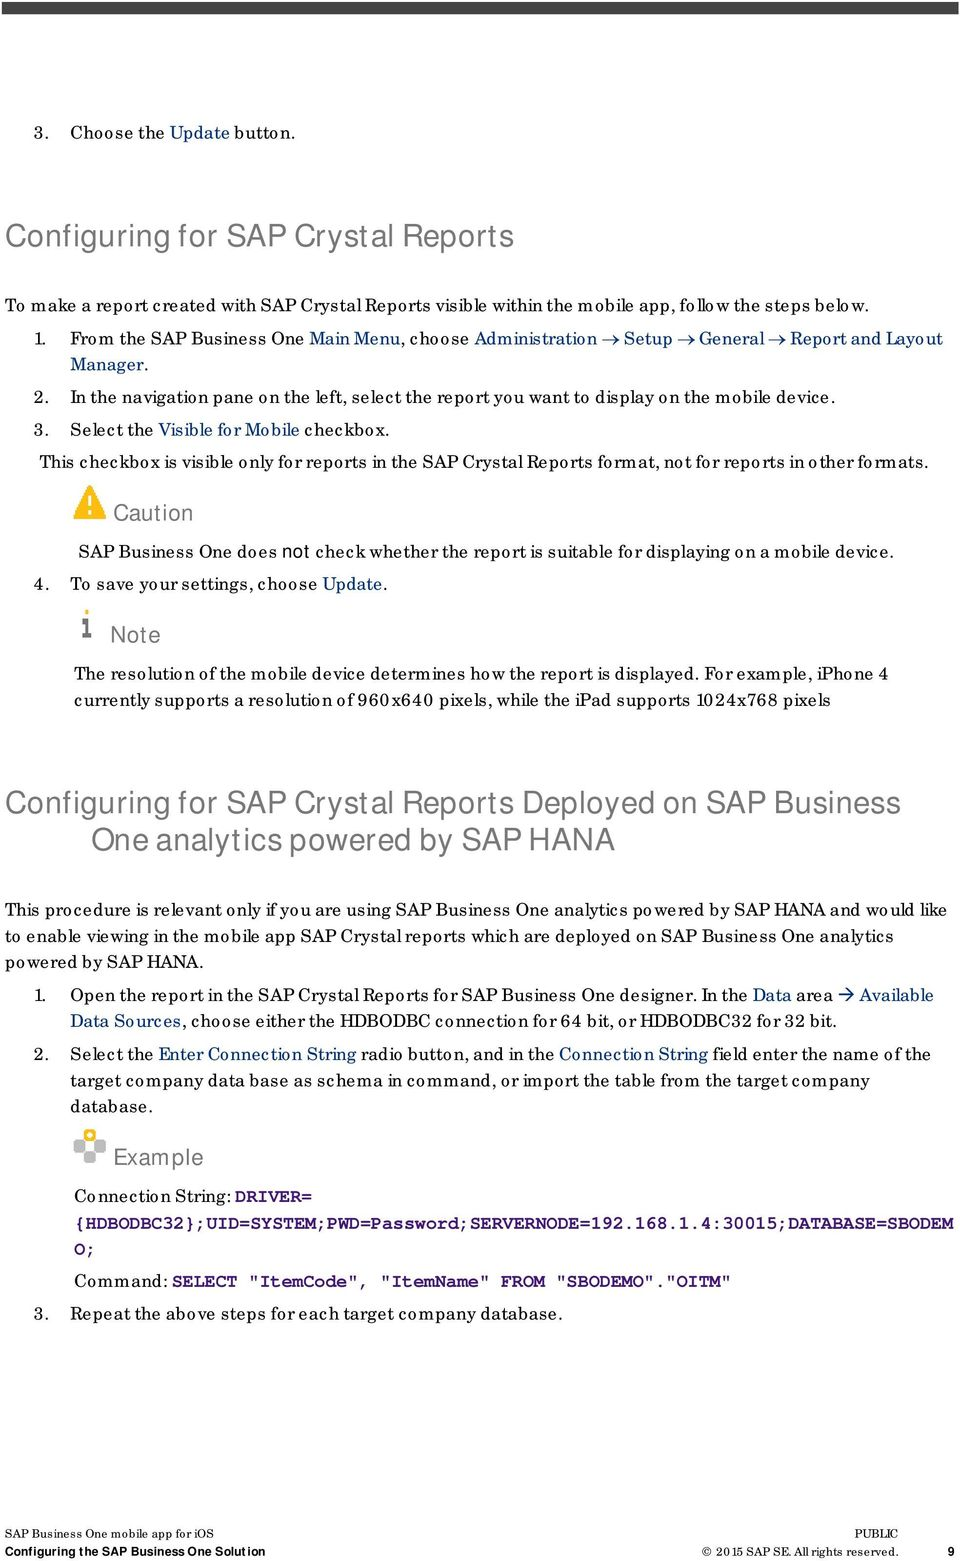 3. Select the Visible for Mobile checkbox. This checkbox is visible only for reports in the SAP Crystal Reports format, not for reports in other formats.